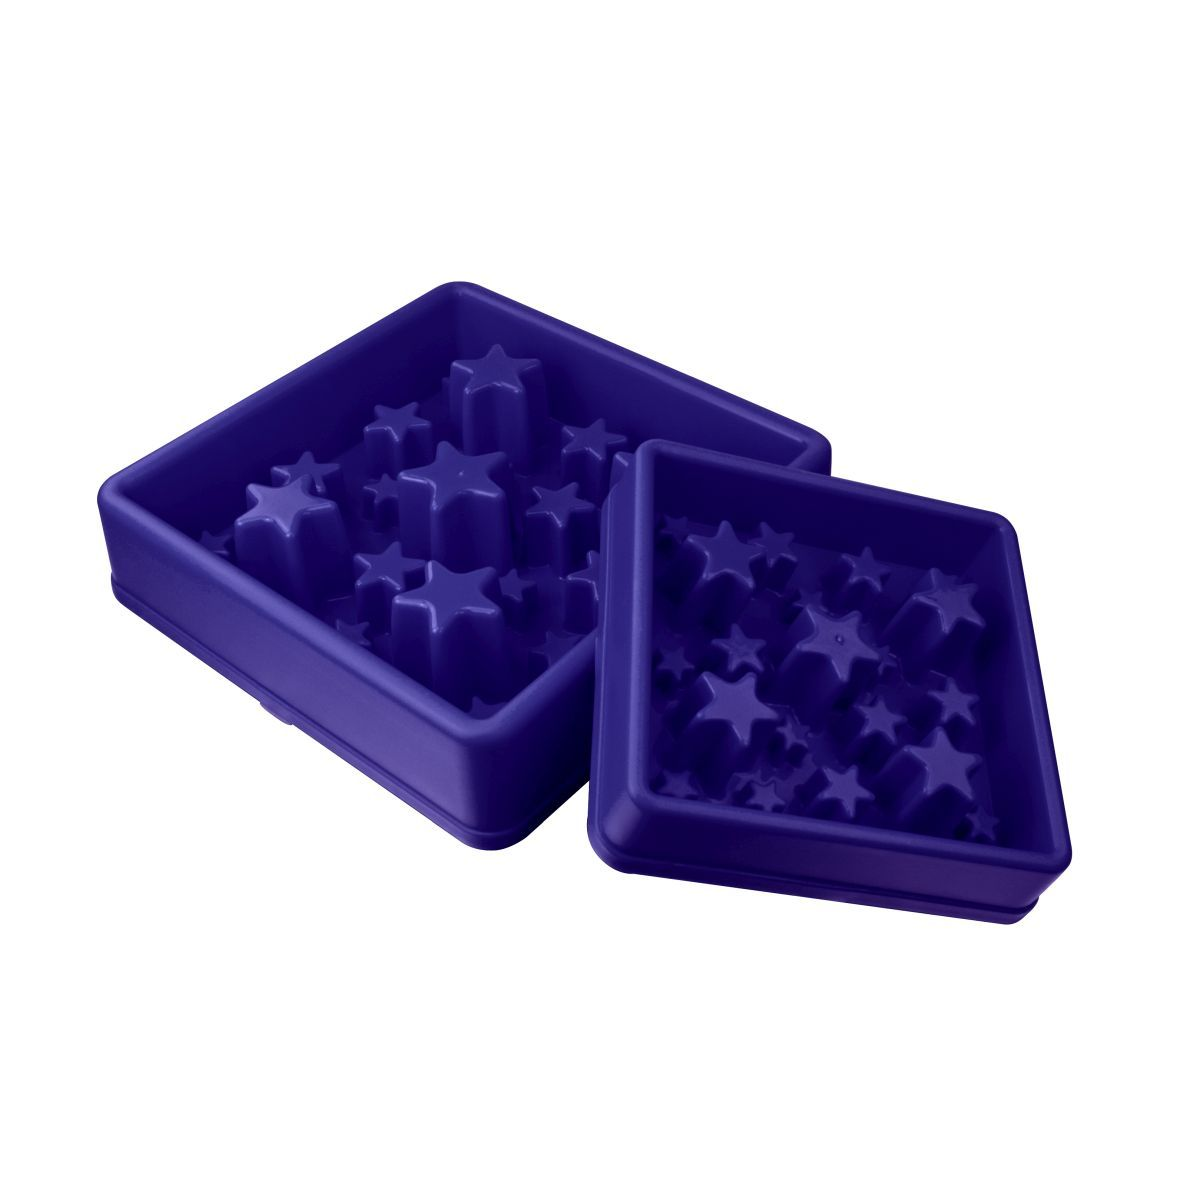 EAT SLOW STAR BLAUW L N 00001